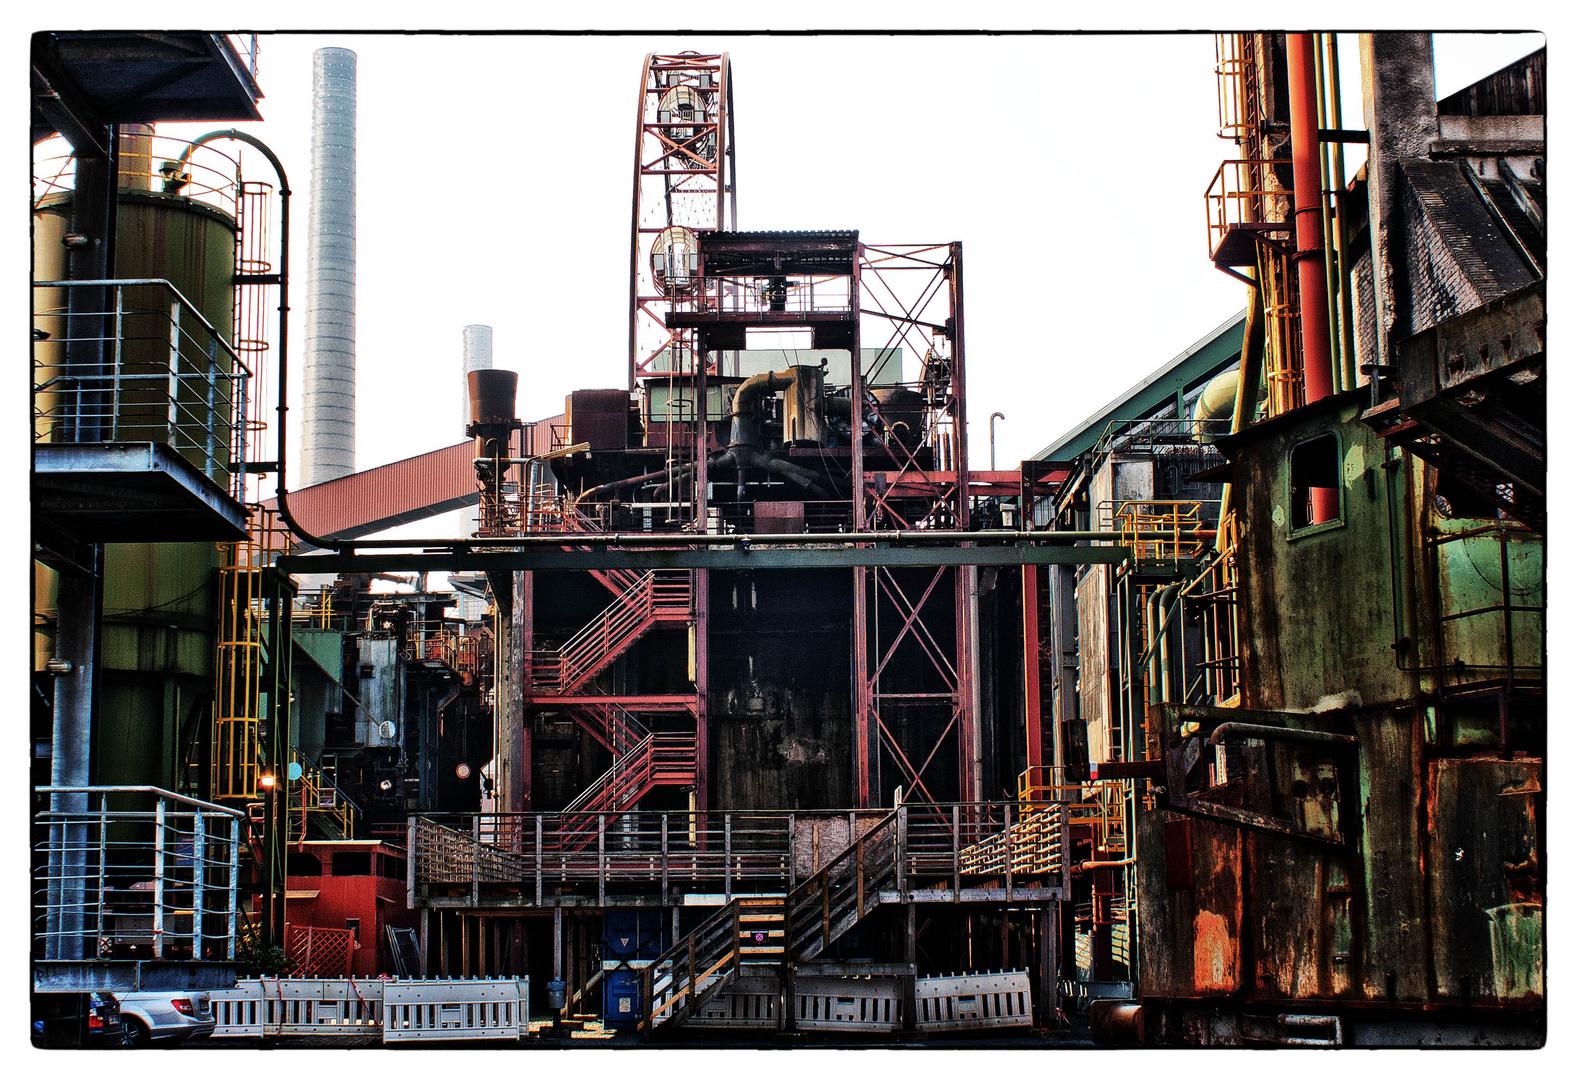 Industrie-Farbe